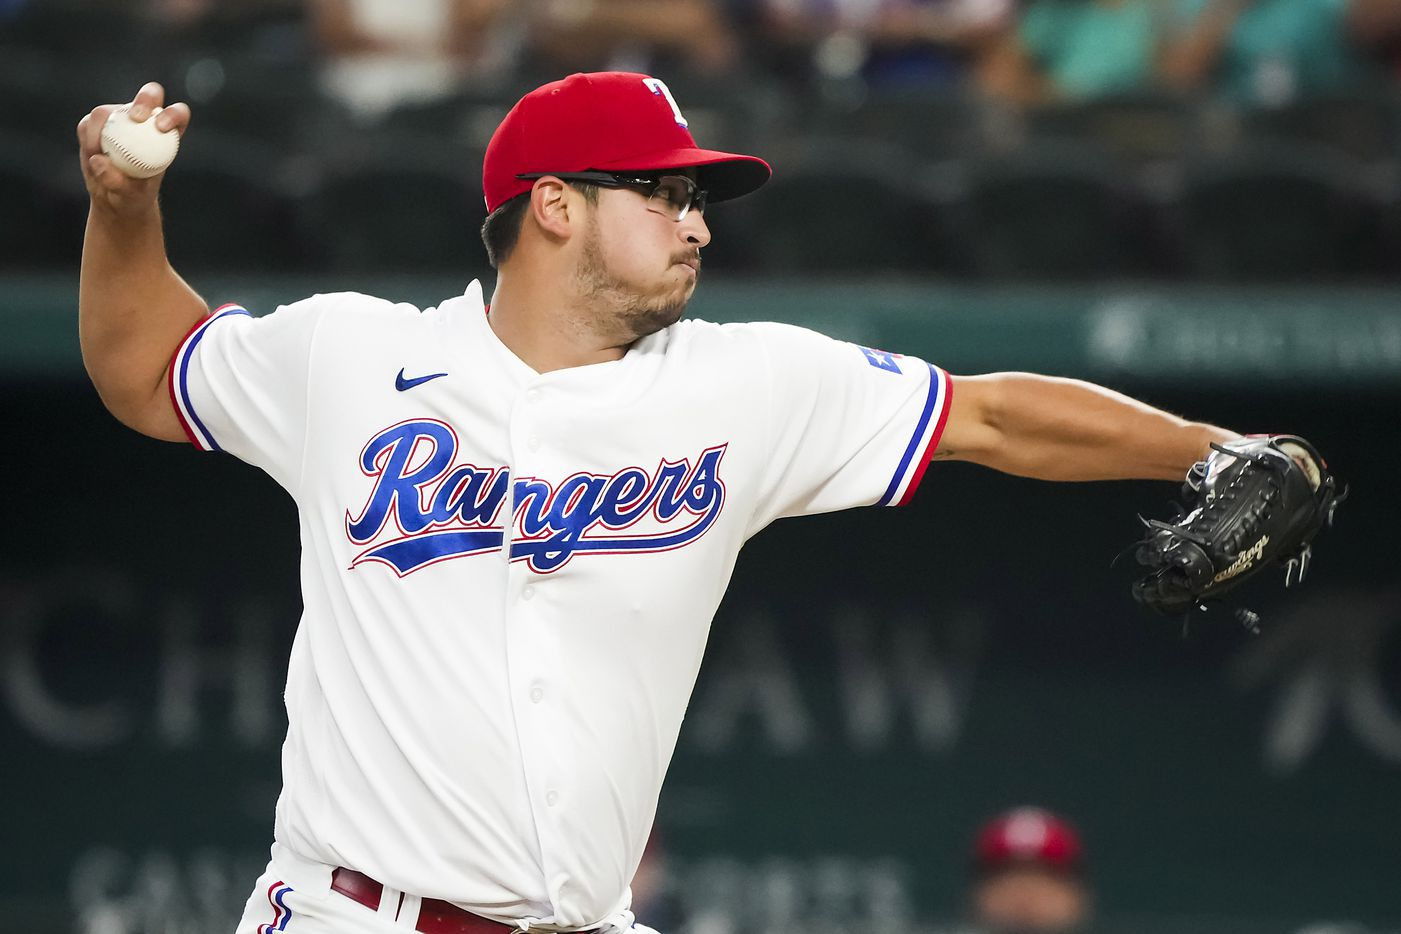 Texas Rangers starting pitcher Dane Dunning delivers during the first inning against the Detroit Tigers at Globe Life Field on Tuesday, July 6, 2021.